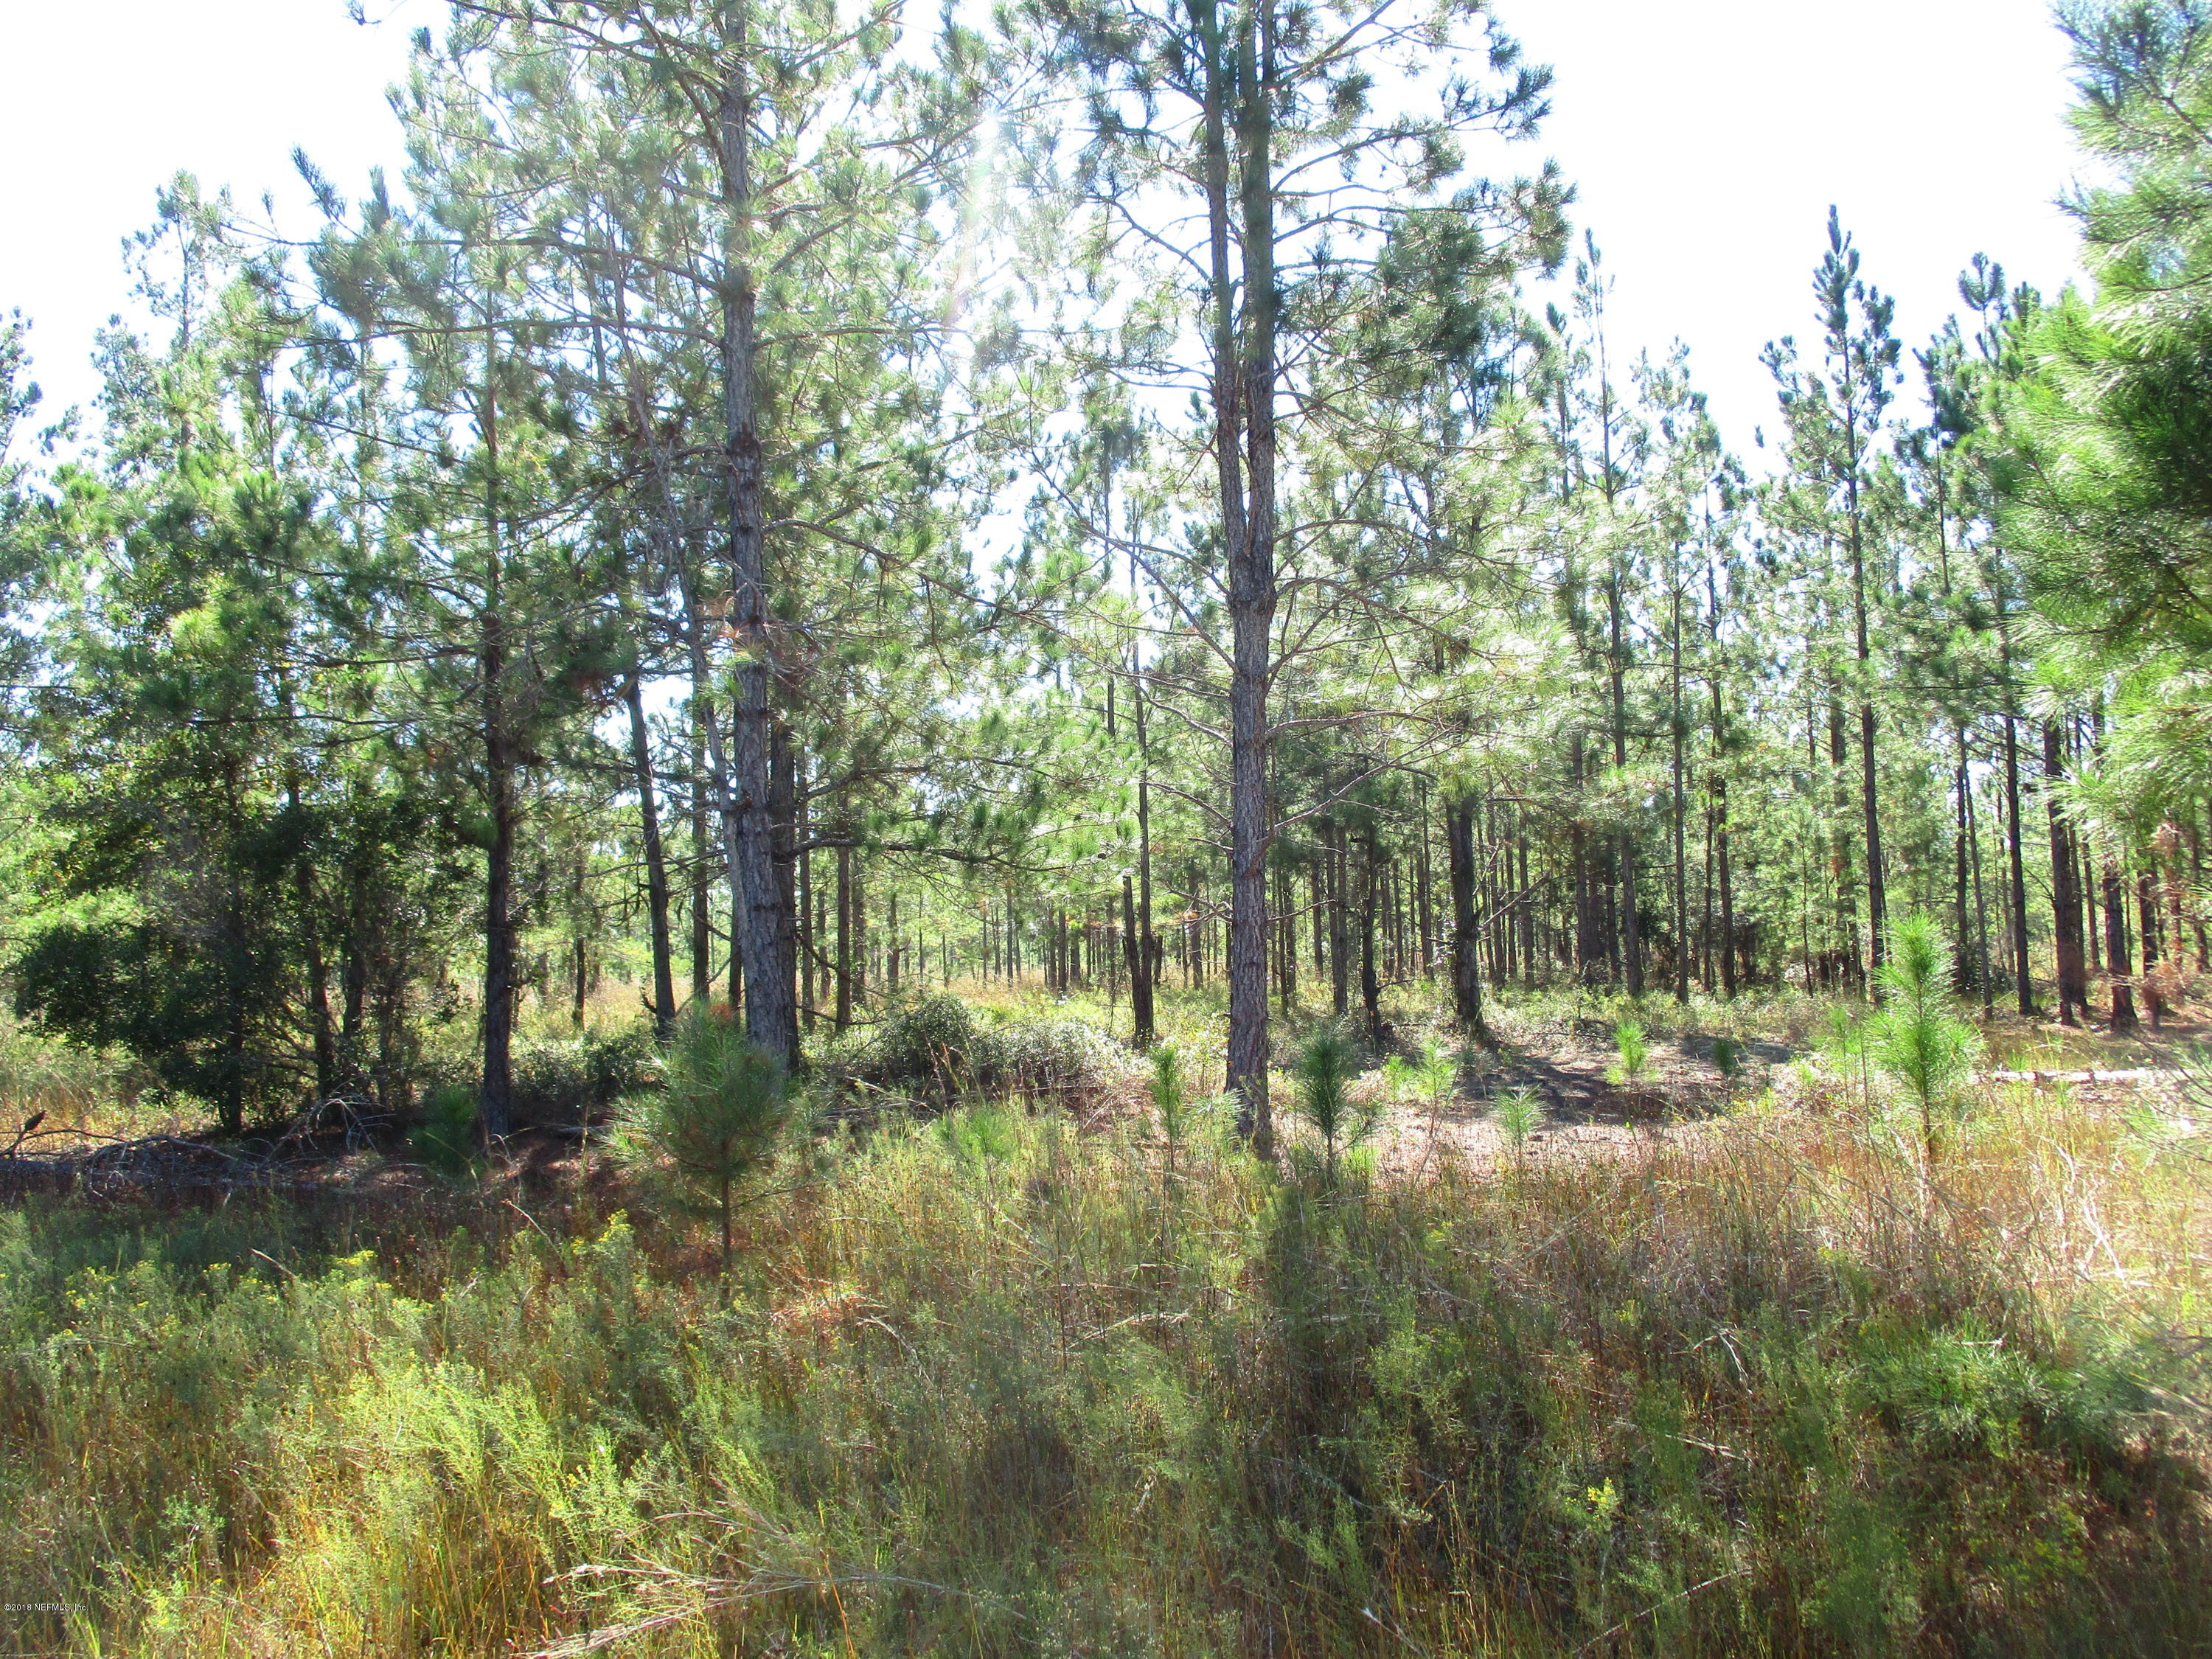 0 SUNDBERG, HILLIARD, FLORIDA 32046, ,Vacant land,For sale,SUNDBERG,964624